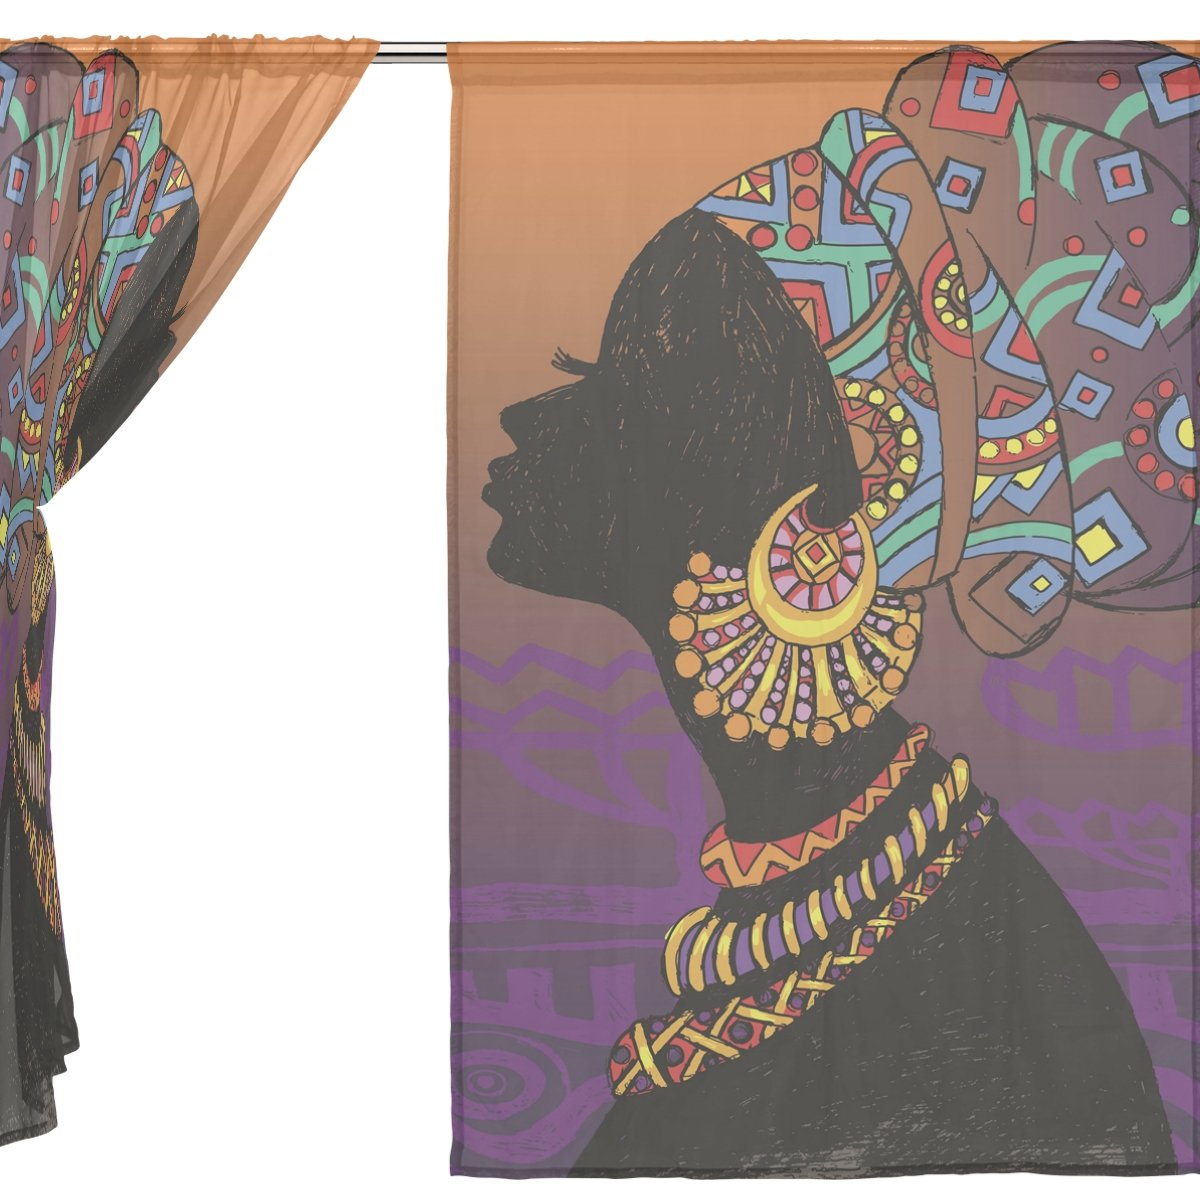 ALAZA Voile Sheer Window Curtain Silhouette African Girl with Earrings Door Way Tulle Curtain Drapes Panels for Living Room Bedroom Kitchen 55x78 inch Set of 2